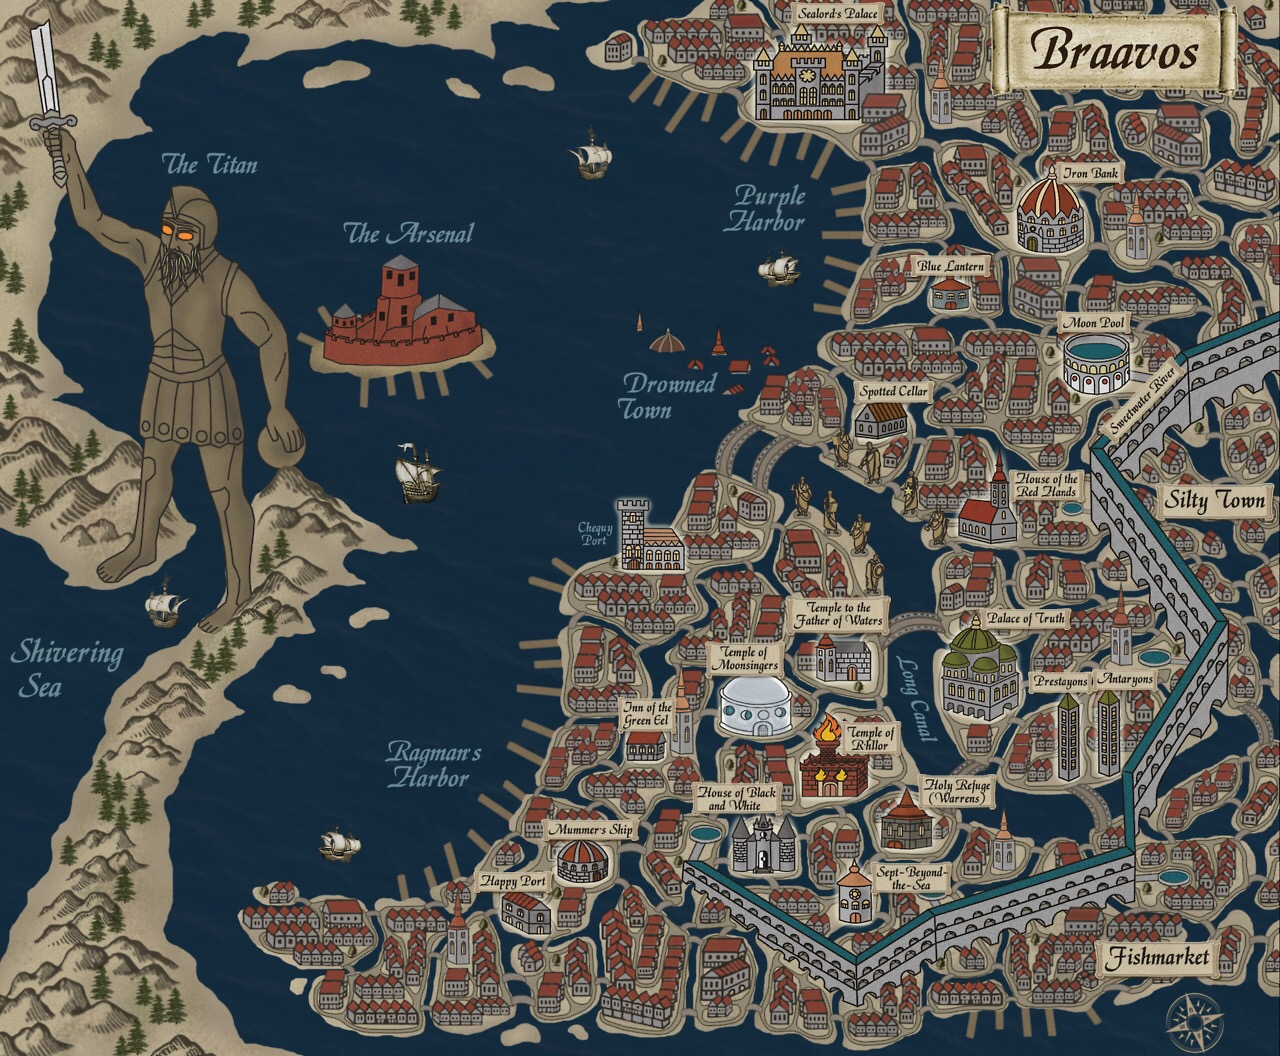 Westeros Interactive Map on interactive us map, interactive map of game of thrones, interactive map of eastern europe, interactive map of washington dc, interactive simpsons map, interactive map of new orleans, interactive map of new york city, interactive map of north america, interactive map of middle east, interactive map of 50 states, interactive map of latin america, interactive map game of thrones houses, interactive map of panem, interactive map of essos, interactive map of italy, interactive map of east coast, interactive world map from game of thrones,